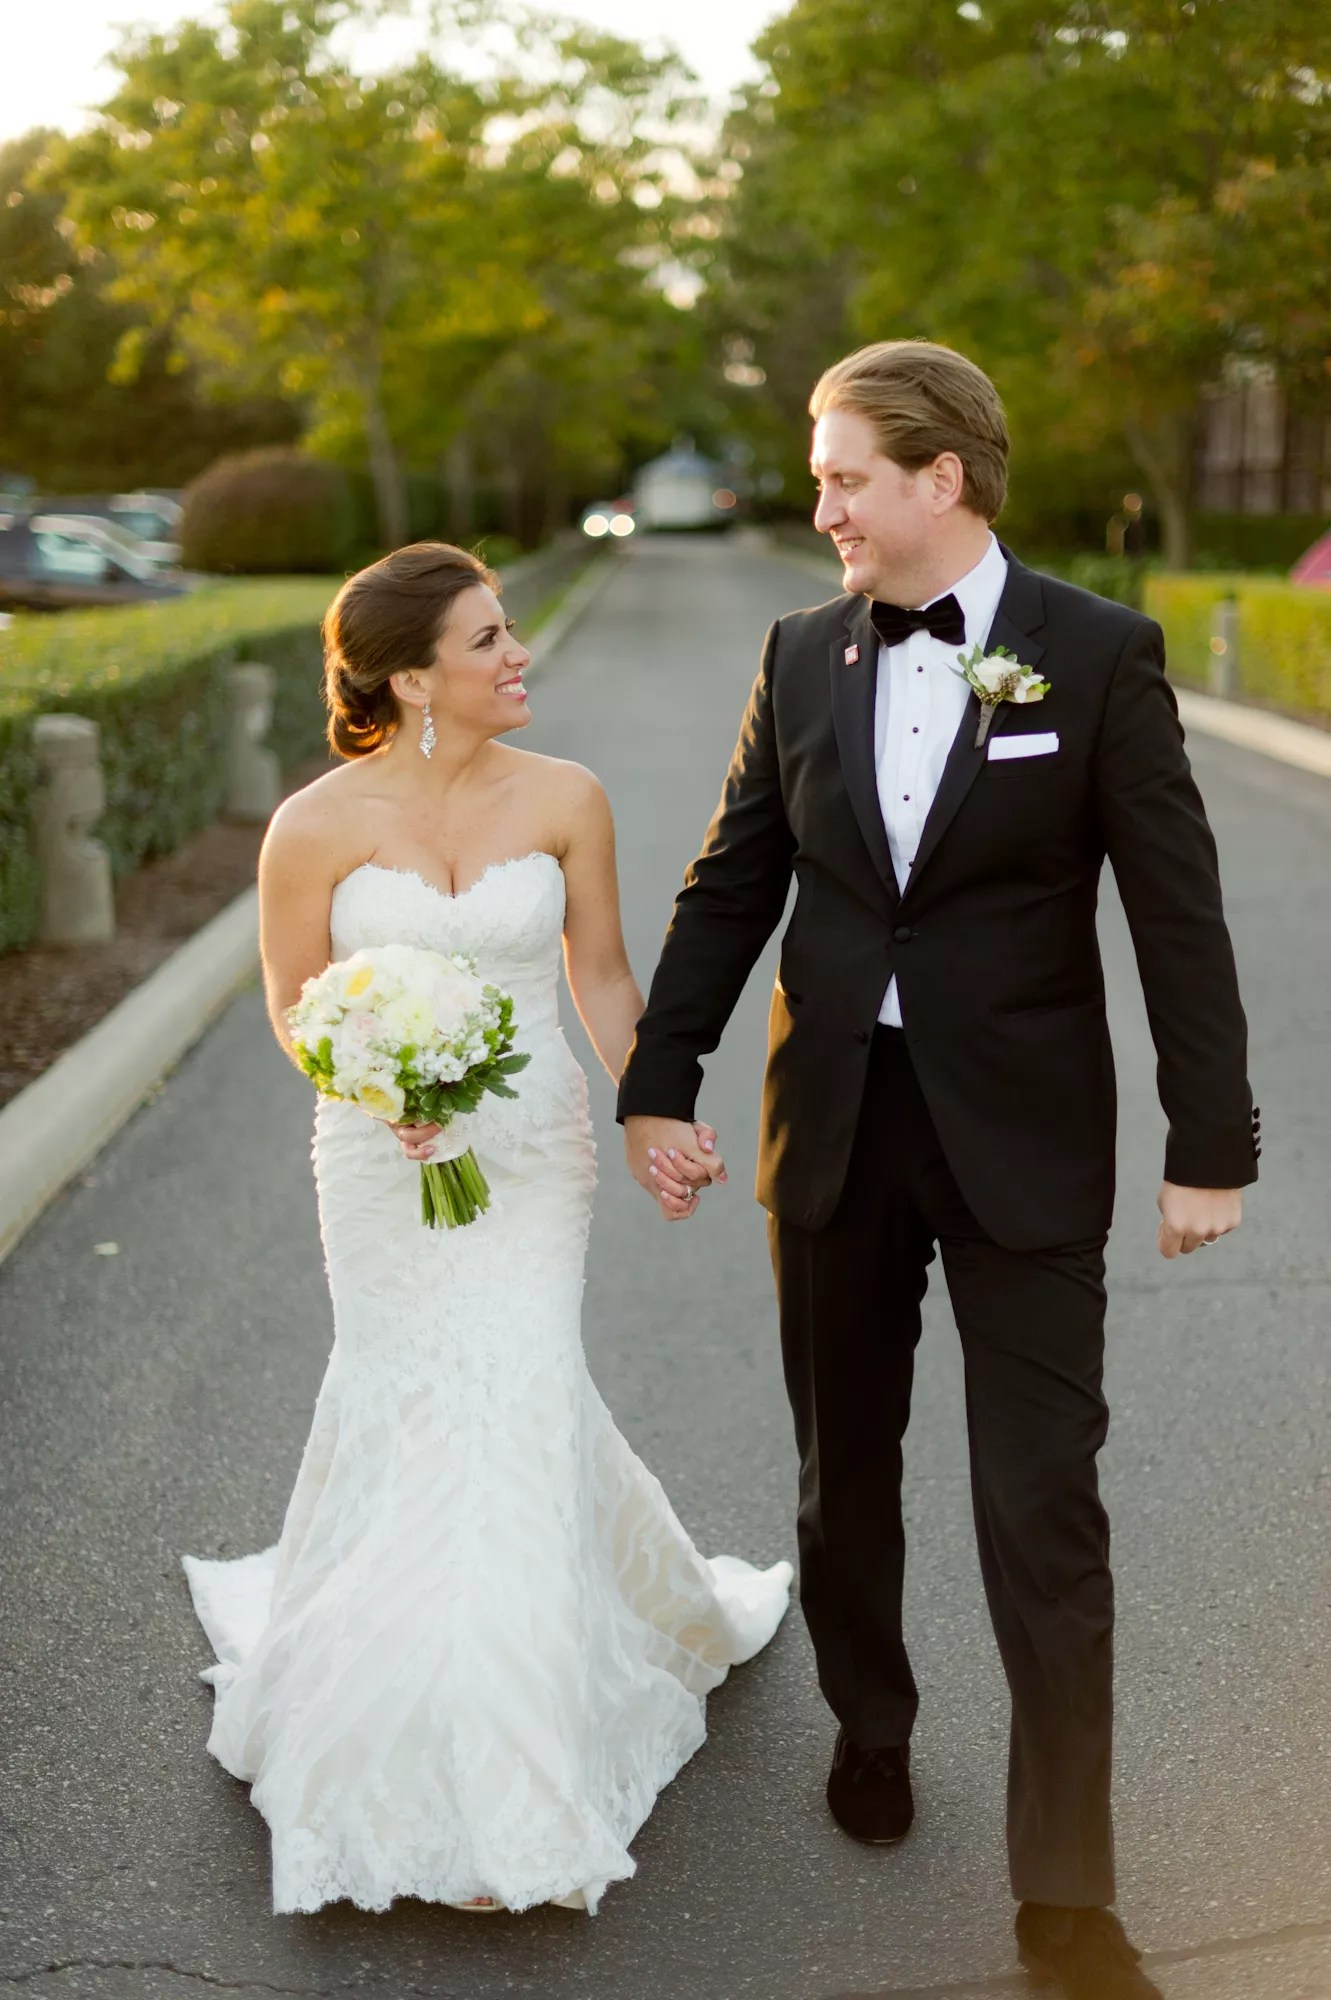 A Formal Greek and Irish Wedding at the Grosse Pointe